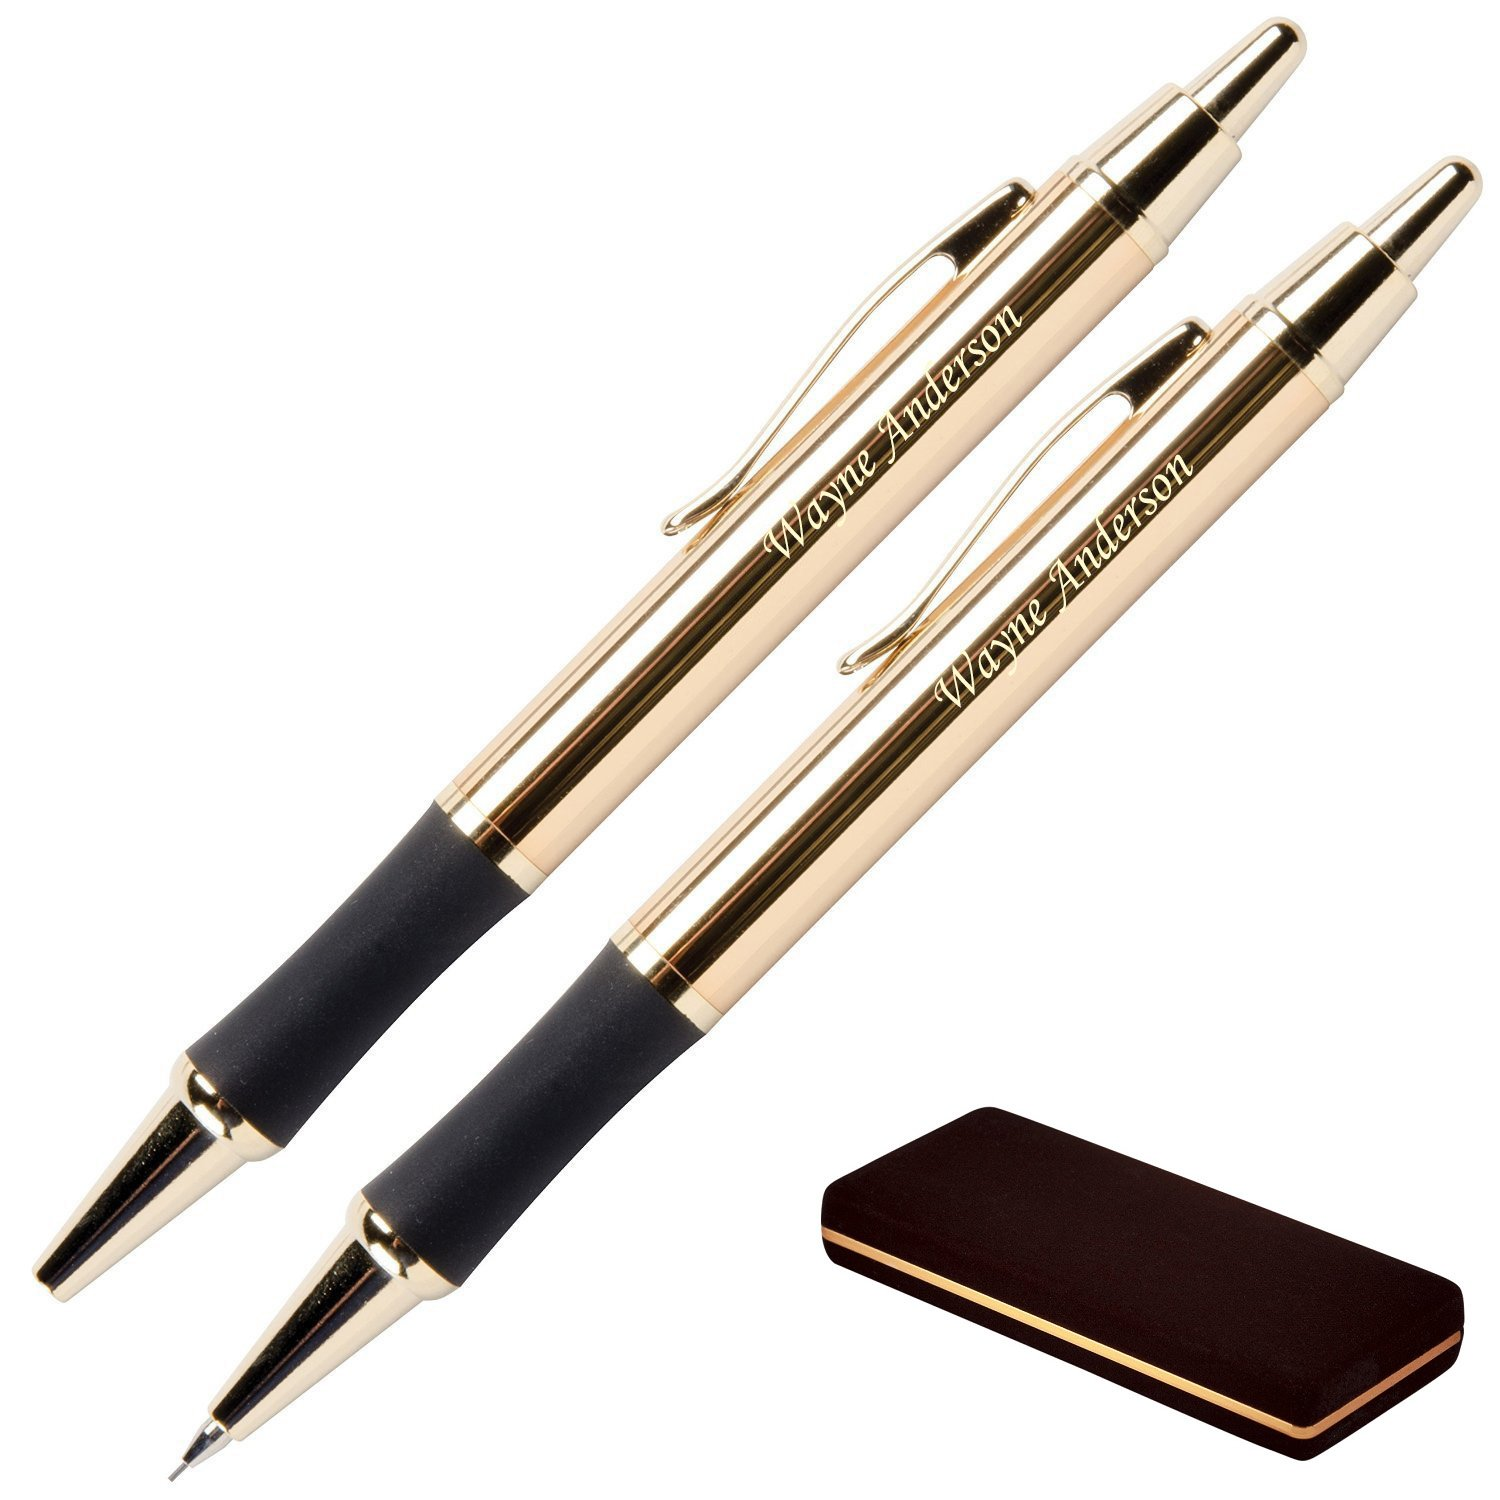 Dayspring Pens - Personalized Monroe 24 Karat Gold Plated Gift Pen and Pencil Set. Custom Engraved Fast, Great Gift for Man or Woman with Real Gold Plating. Free Case Included